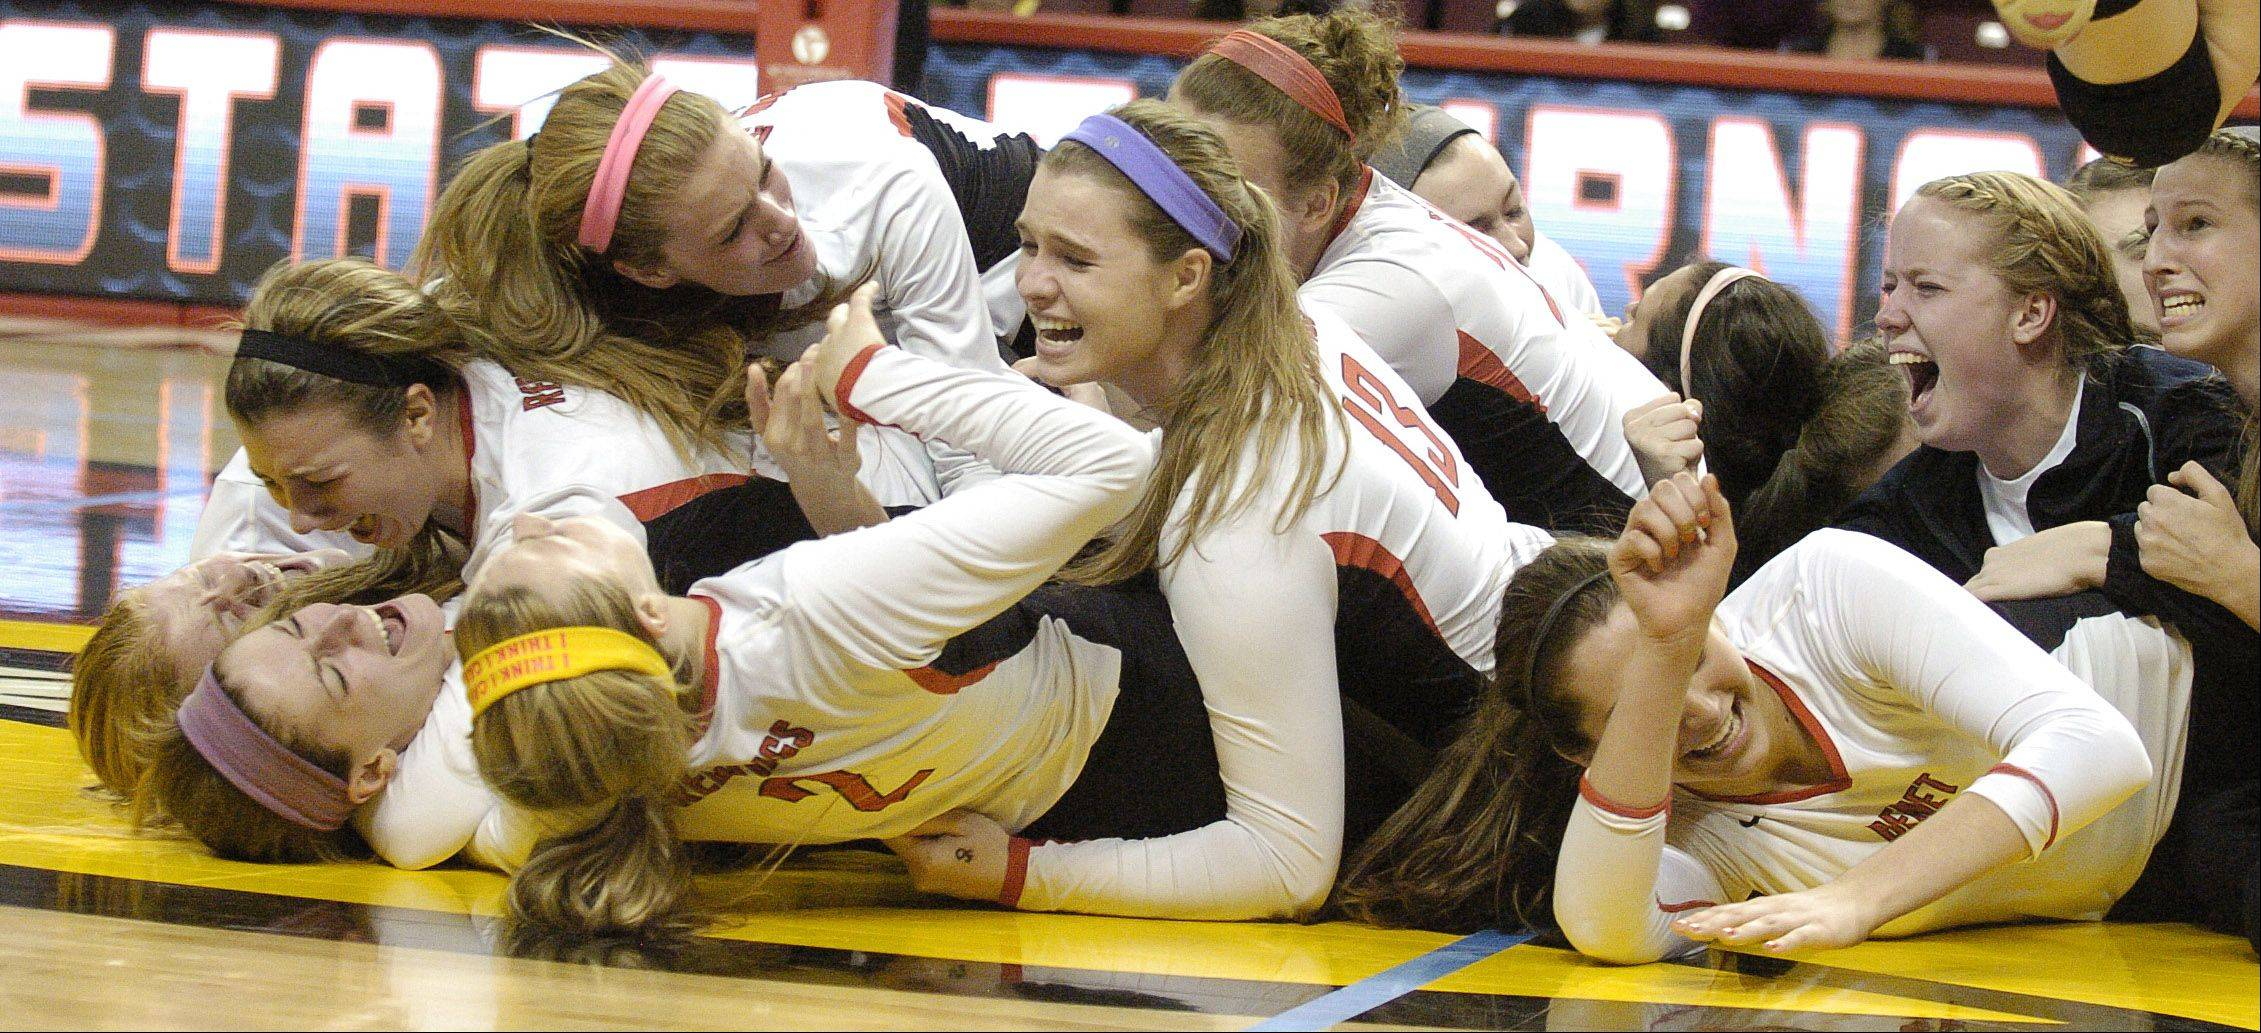 Benet players hit the floor after winning the IHSA Class 4A girls volleyball championship after defeating New Trier Saturday.